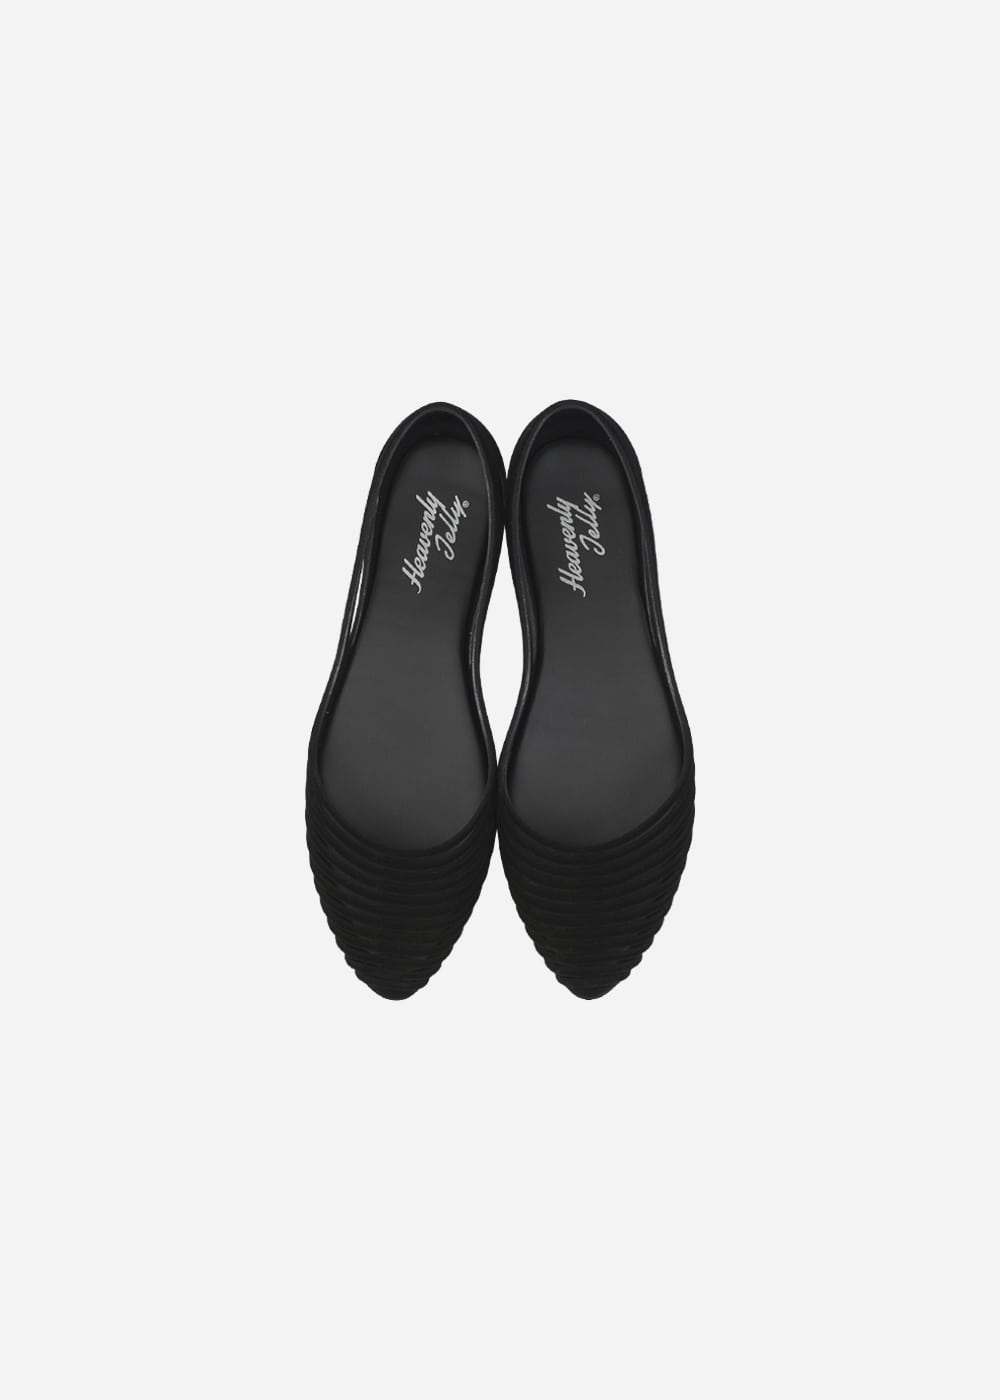 GRACE SUEDE BLACK